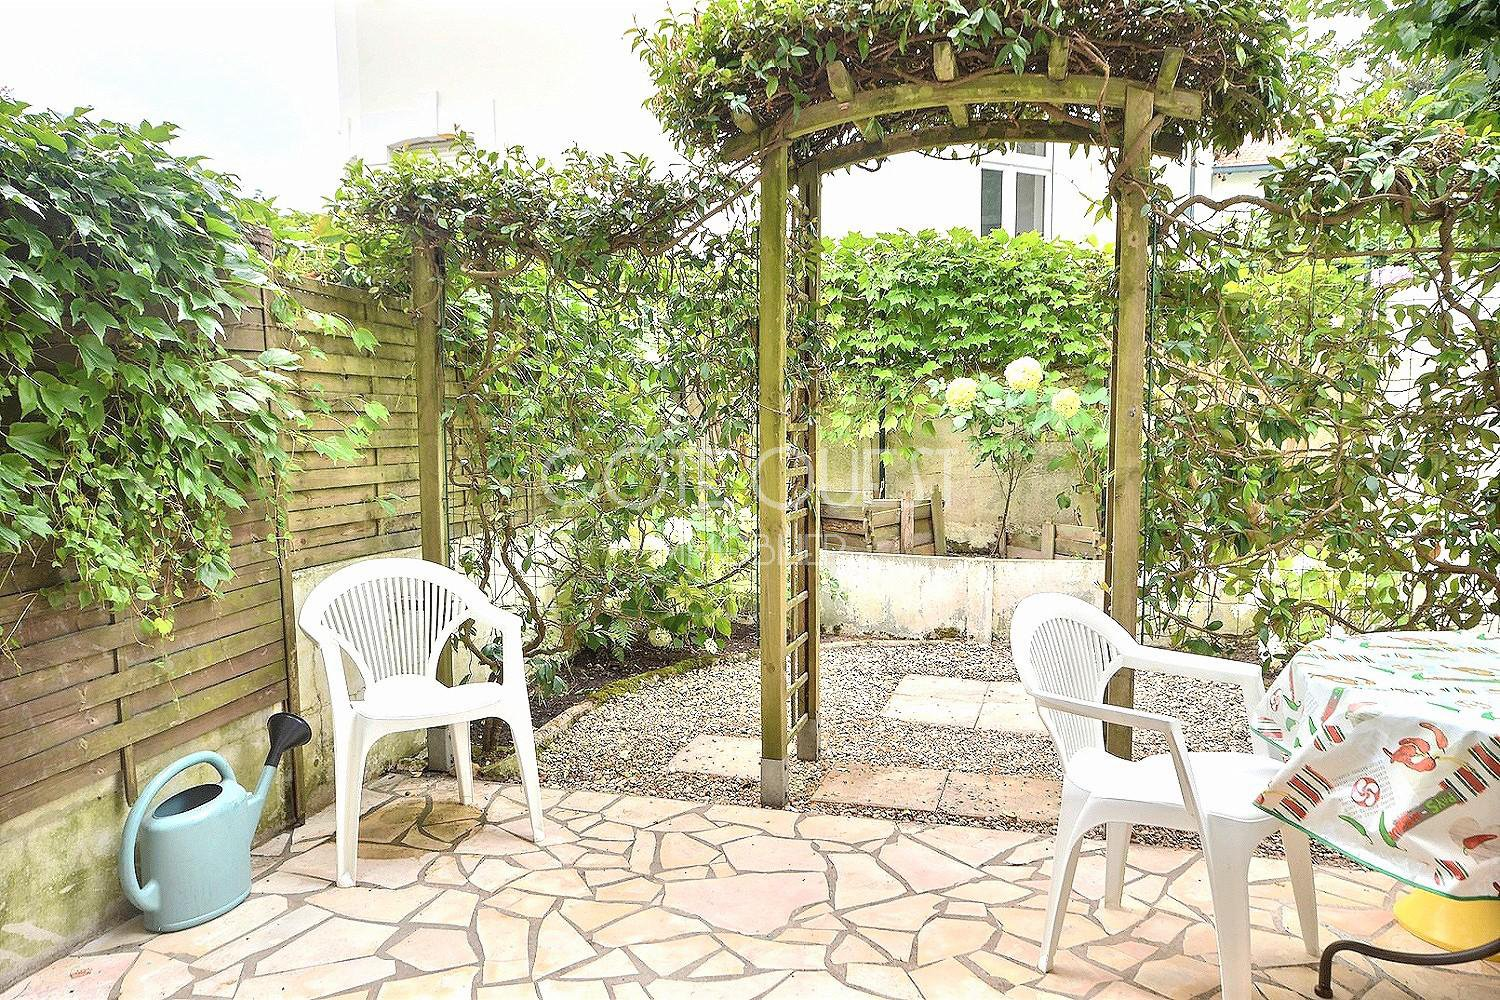 BIARRITZ. A STUDIO APARTMENT WITH A GARDEN